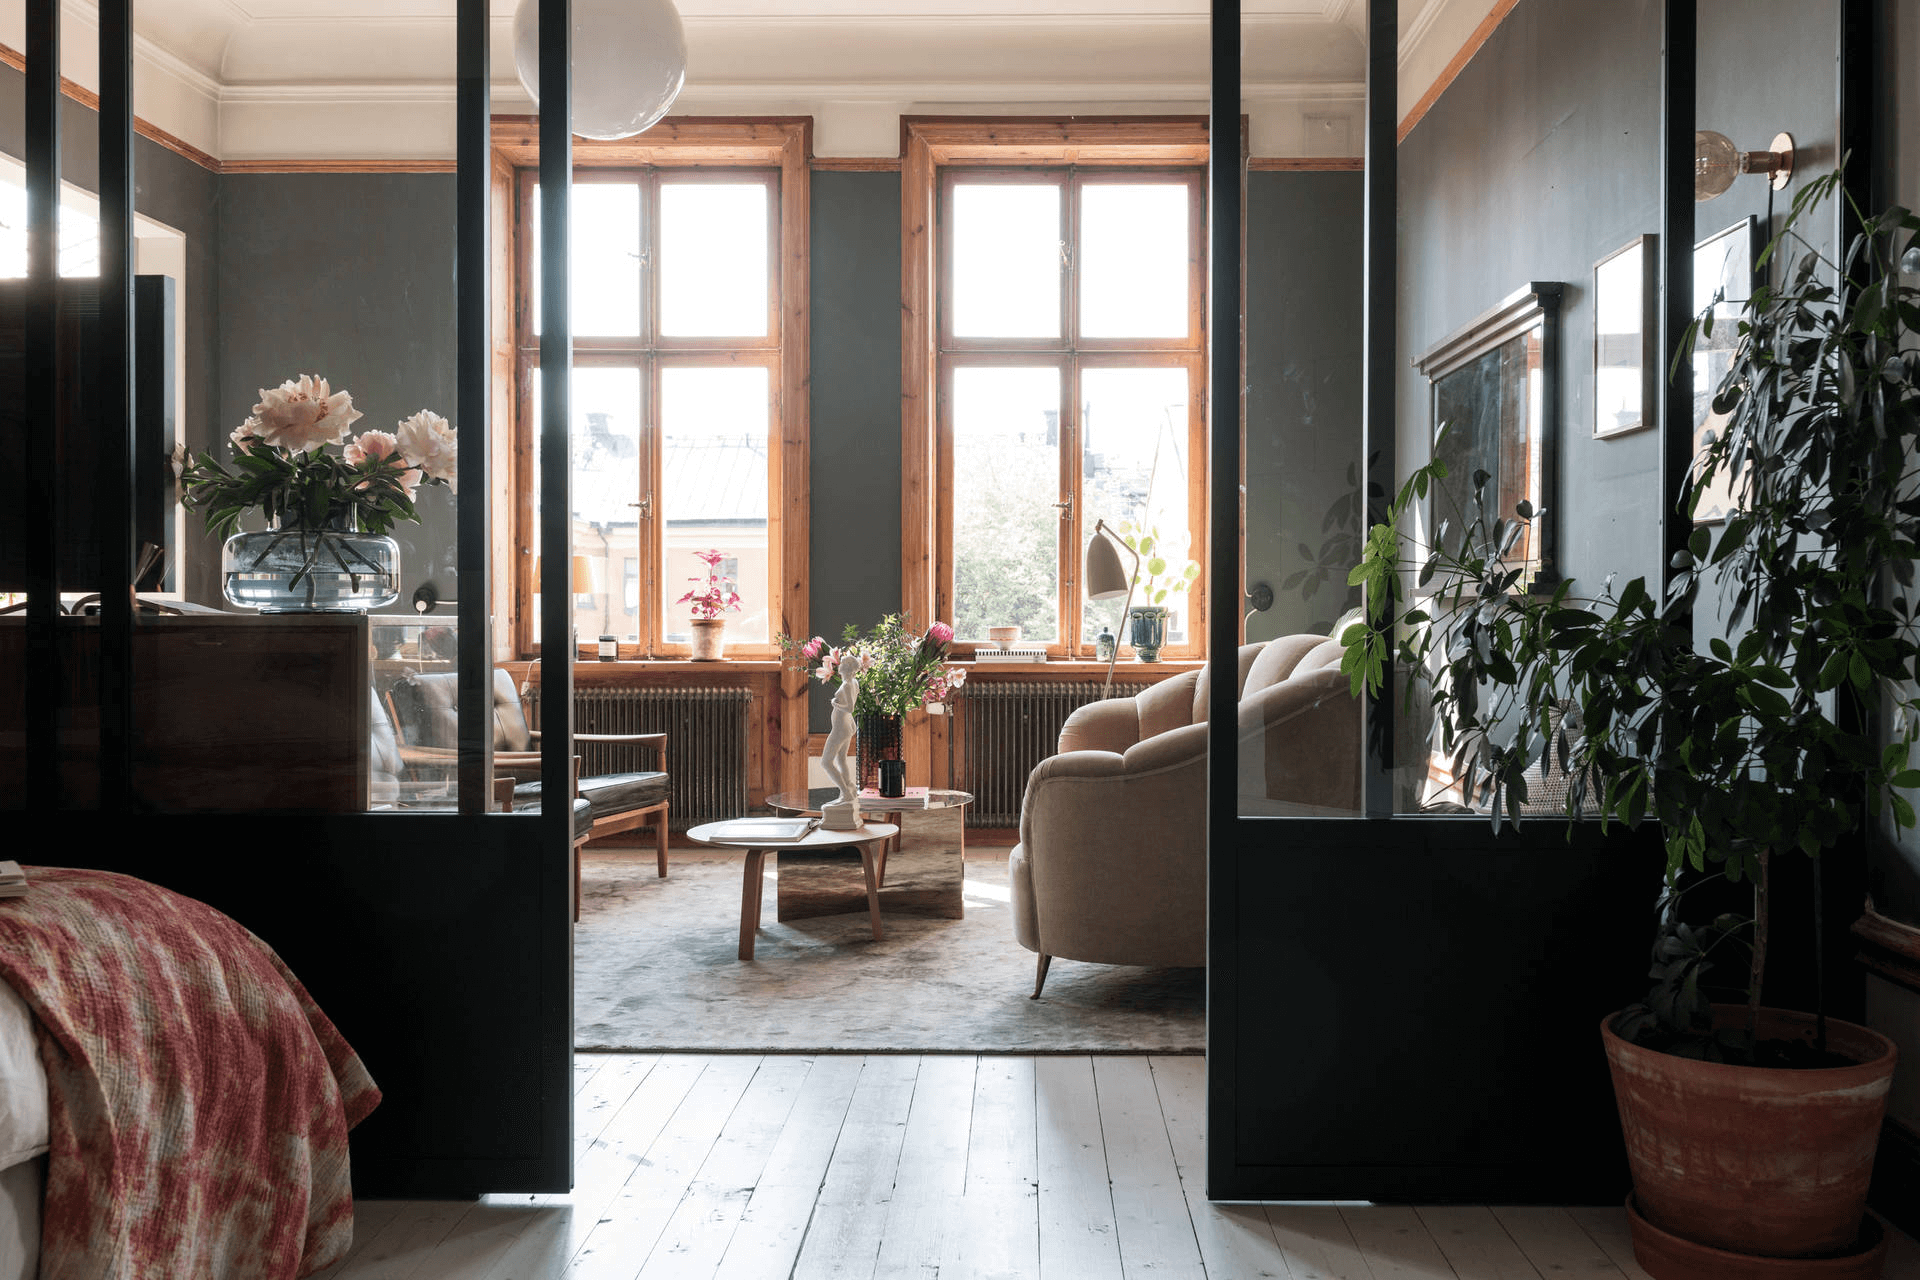 this is a vintage, industrial and scandinavian styled apartment with natural light beaming through giving it a nice feeling